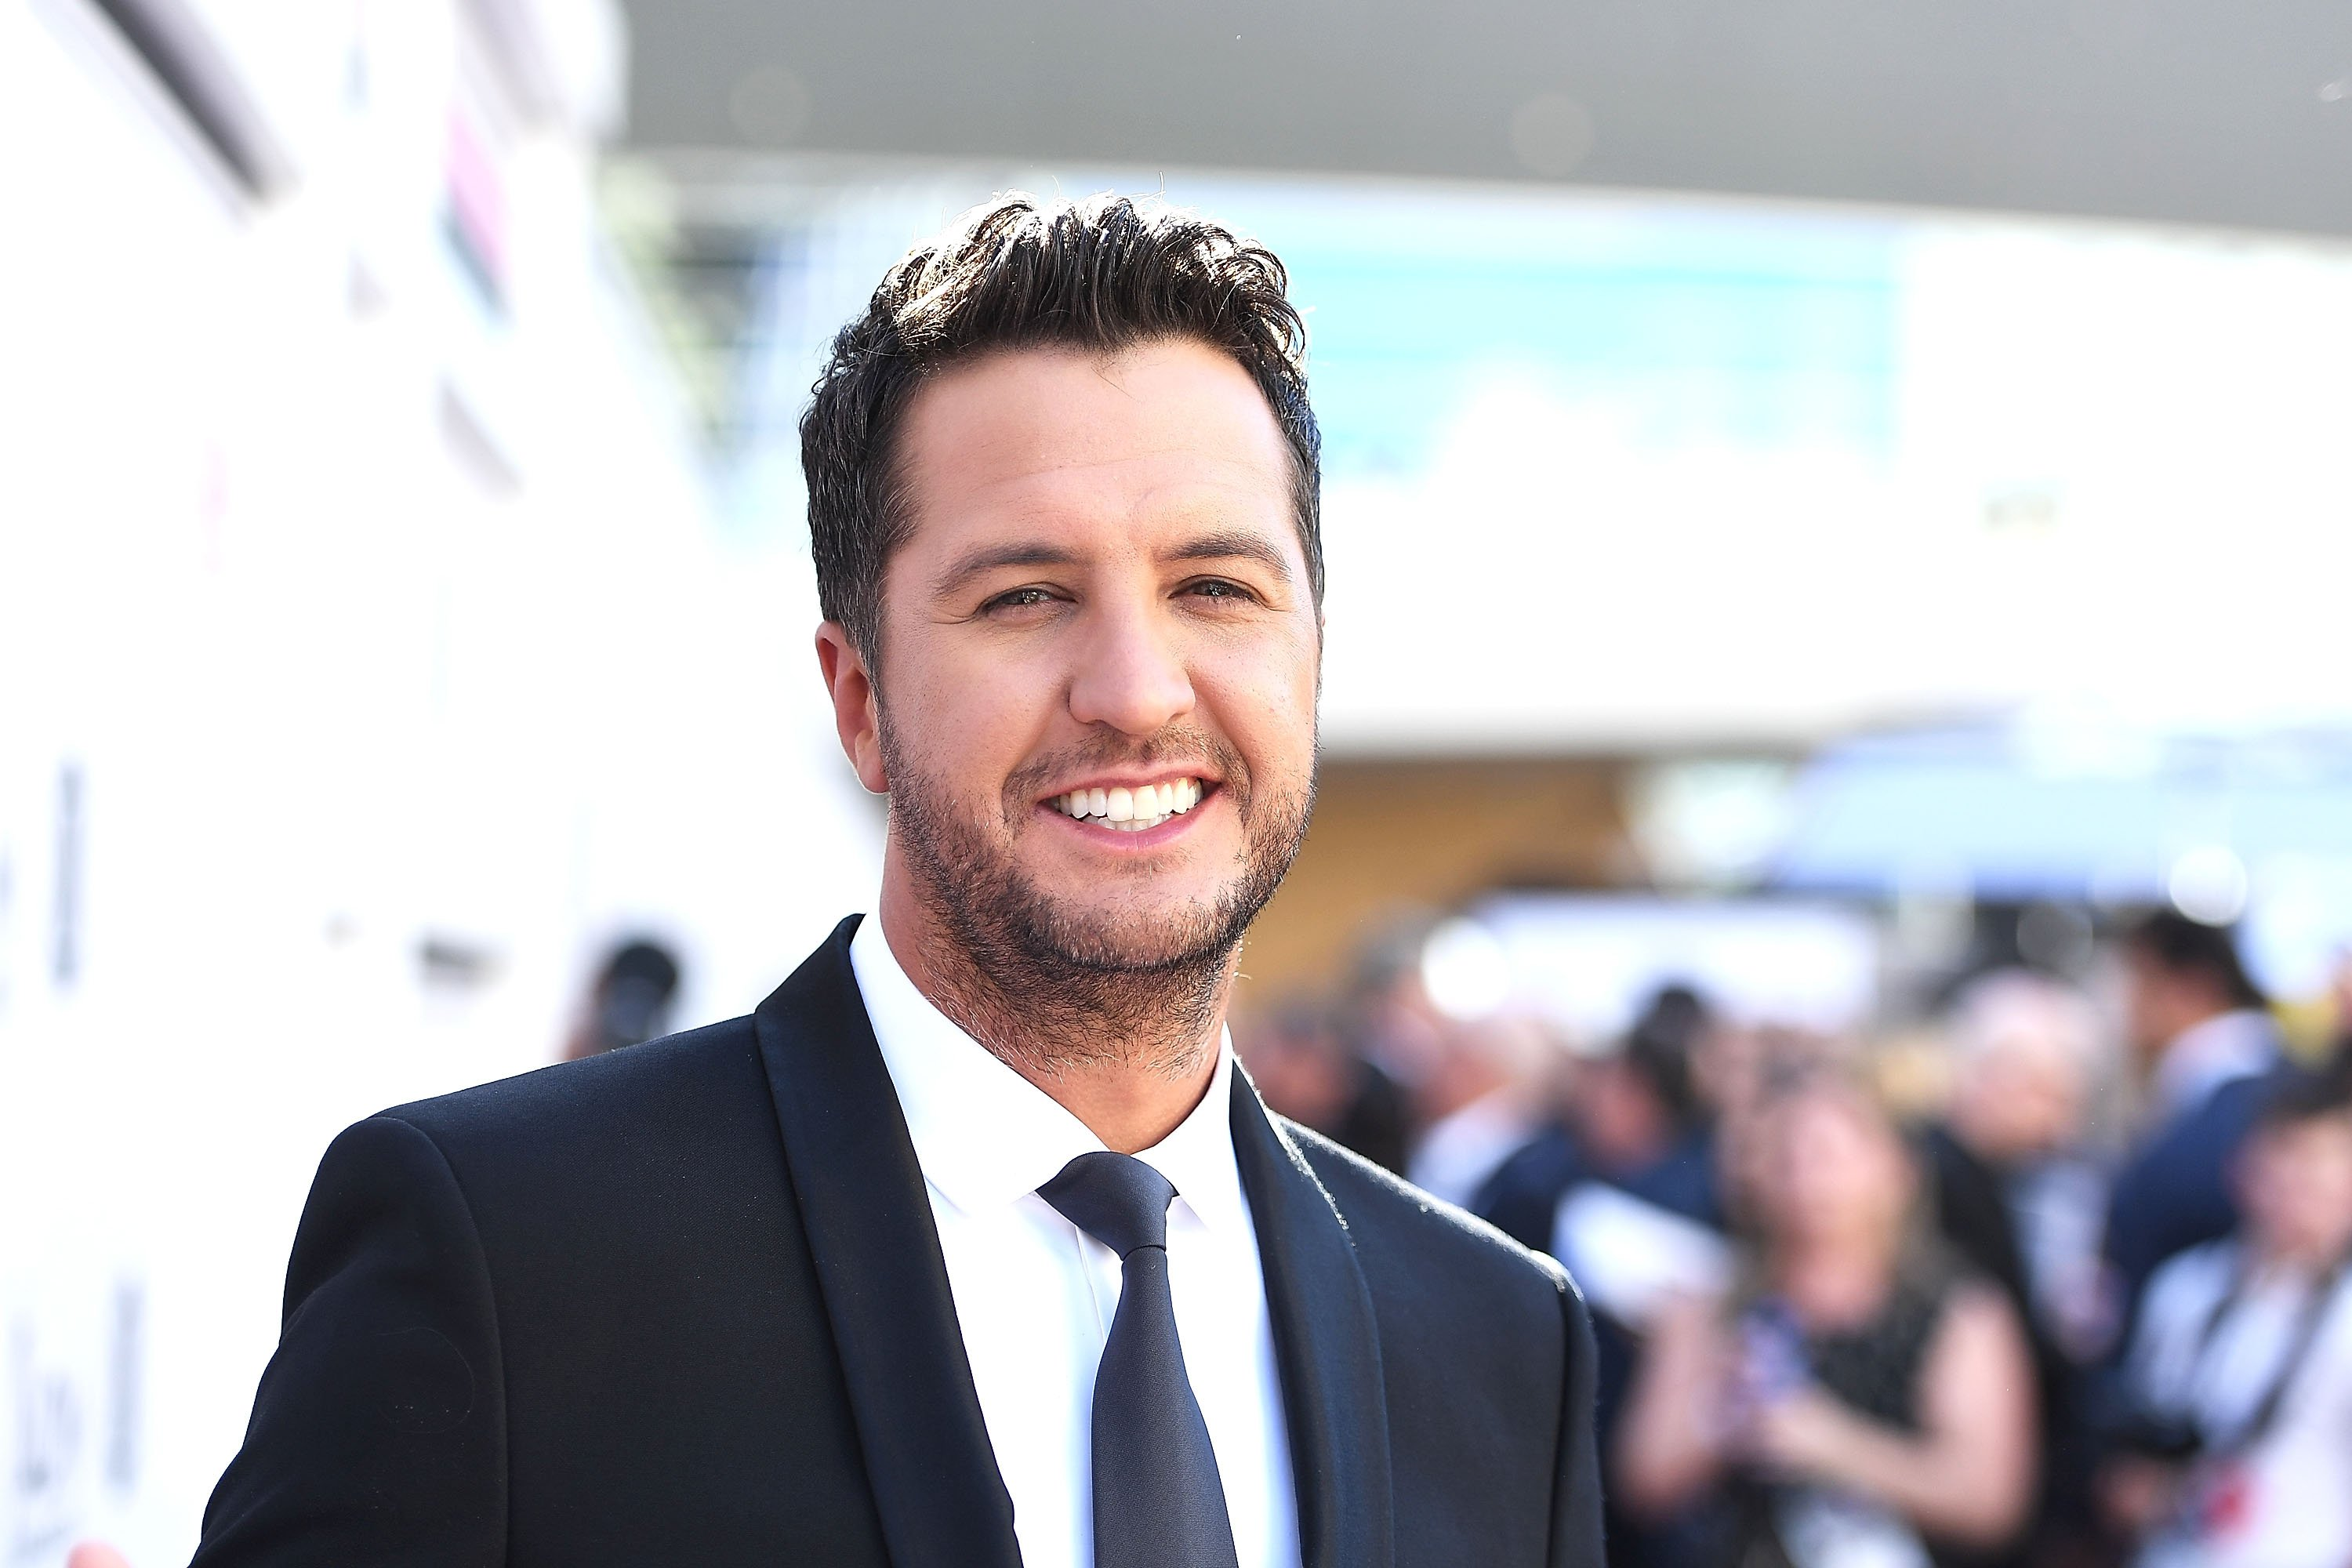 Luke Bryan attends the 52nd Academy Of Country Music Awards at T-Mobile Arena on April 2, 2017 in Las Vegas, Nevada | Photo: Getty Images